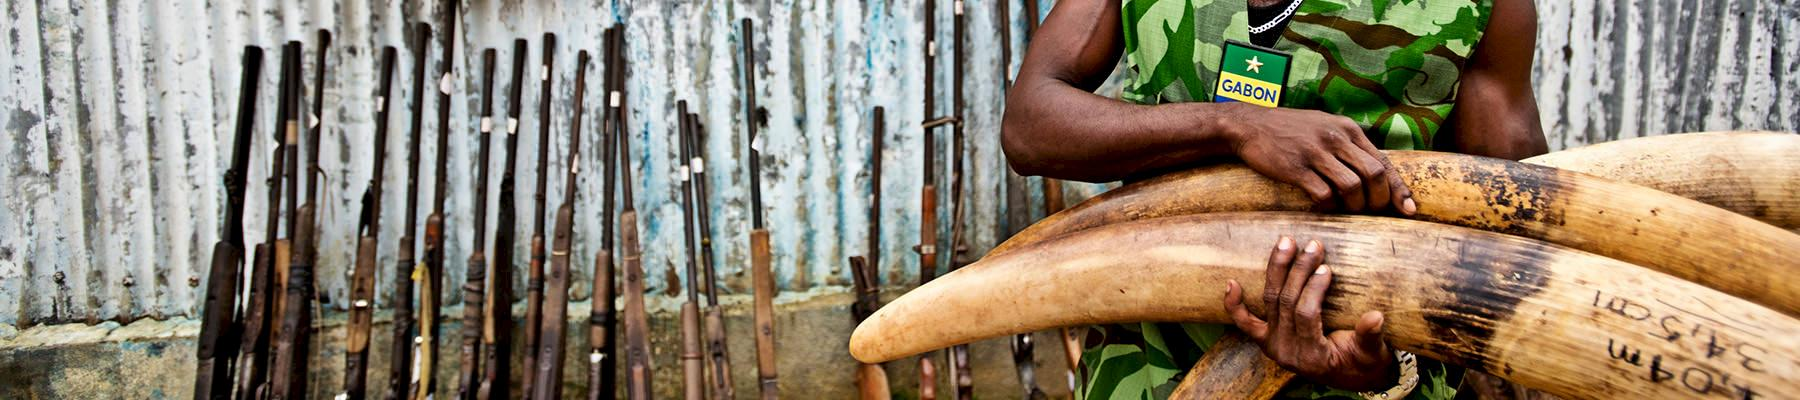 Seized poached elephant tusks and poacher's weapons, Oyem, Gabon © WWF / James Morgan